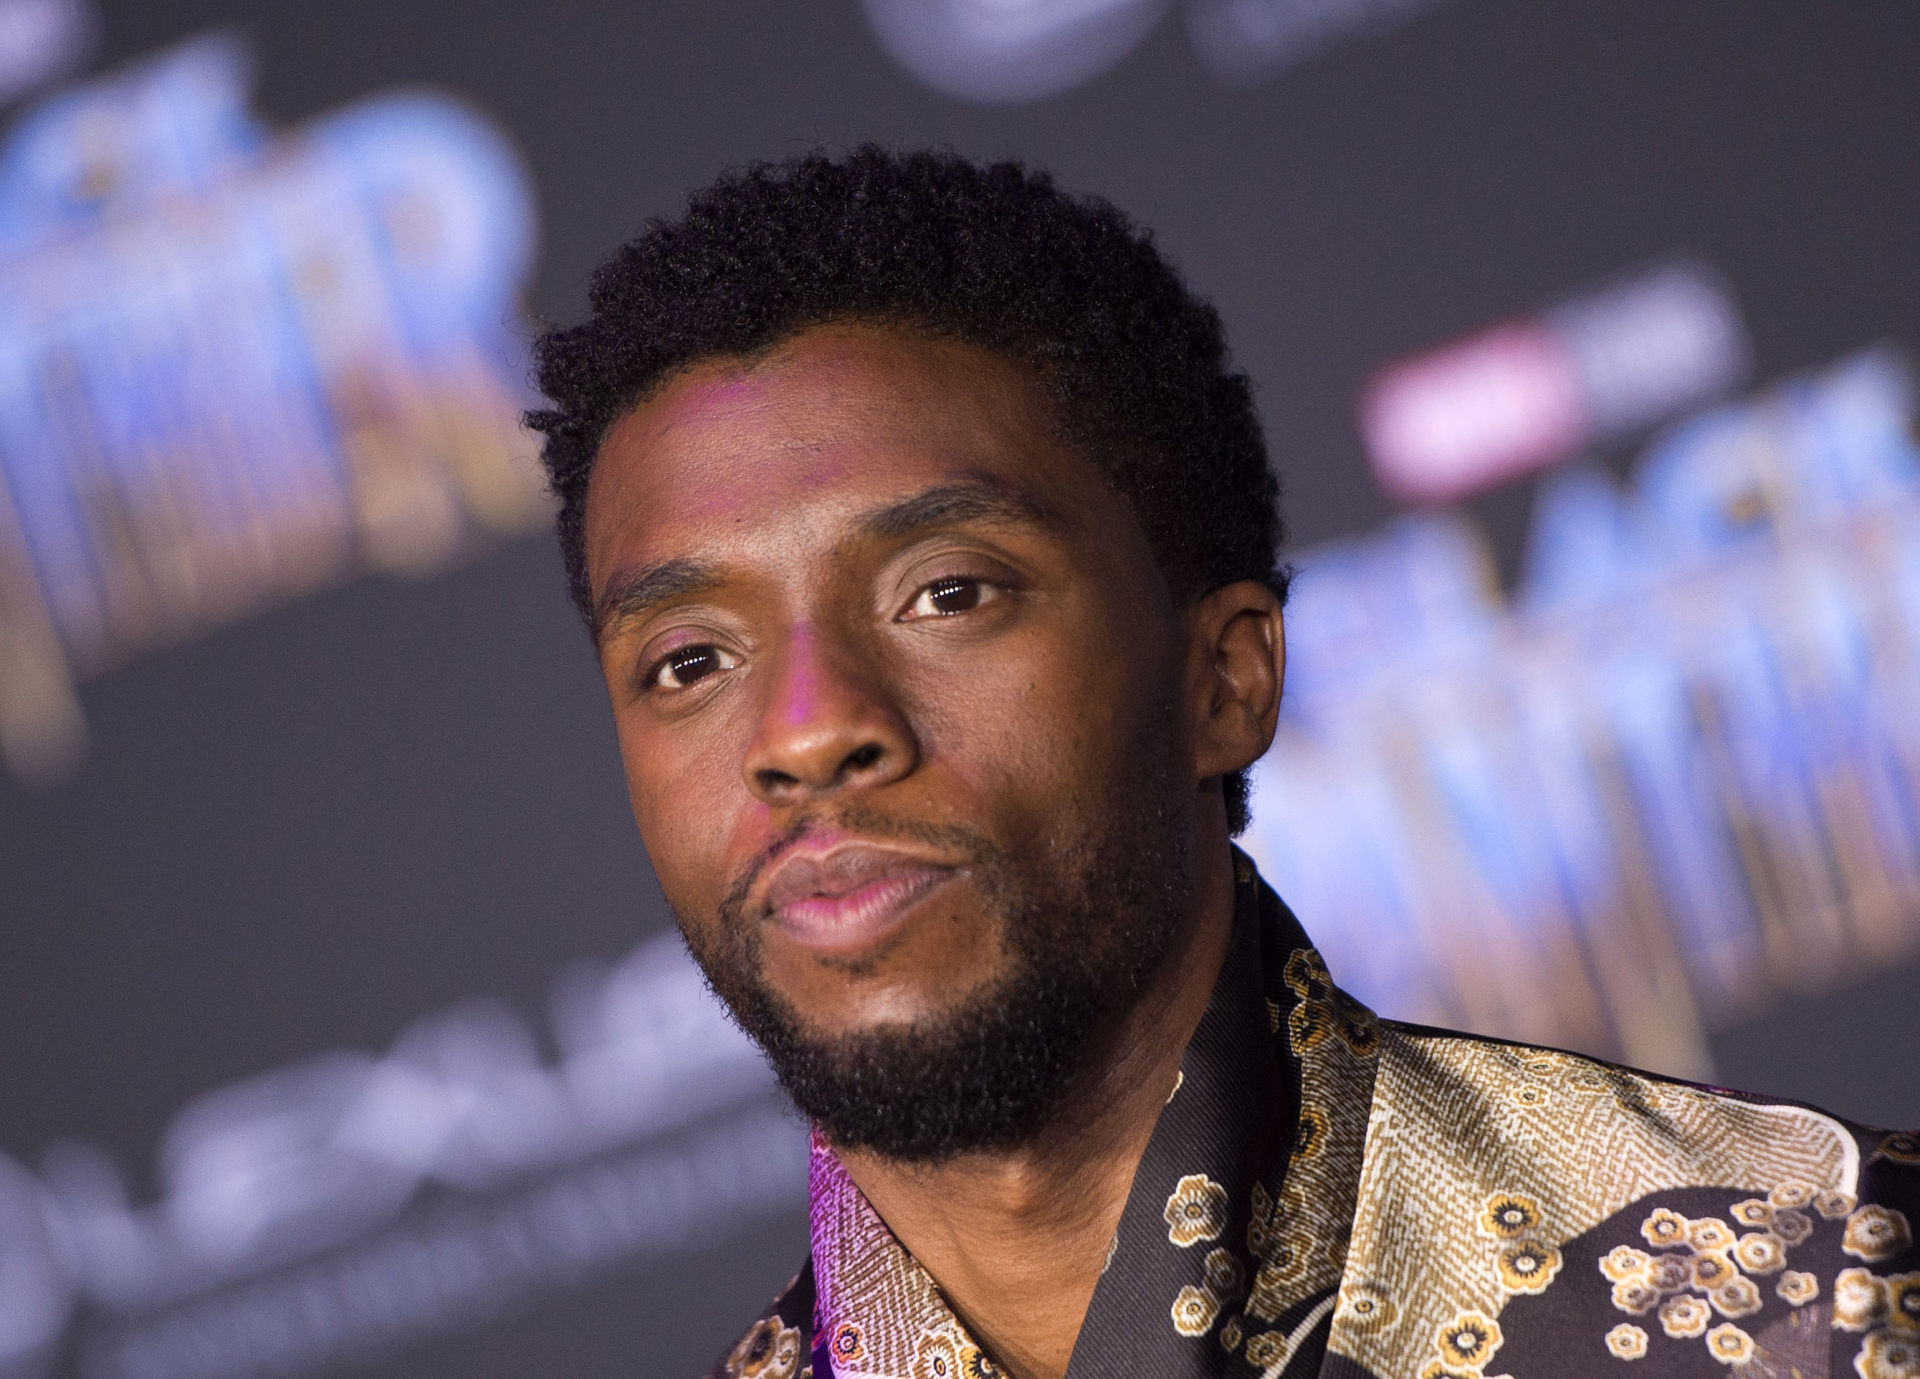 Death Of Chadwick Boseman Spotlights Early-Onset Colon Cancer